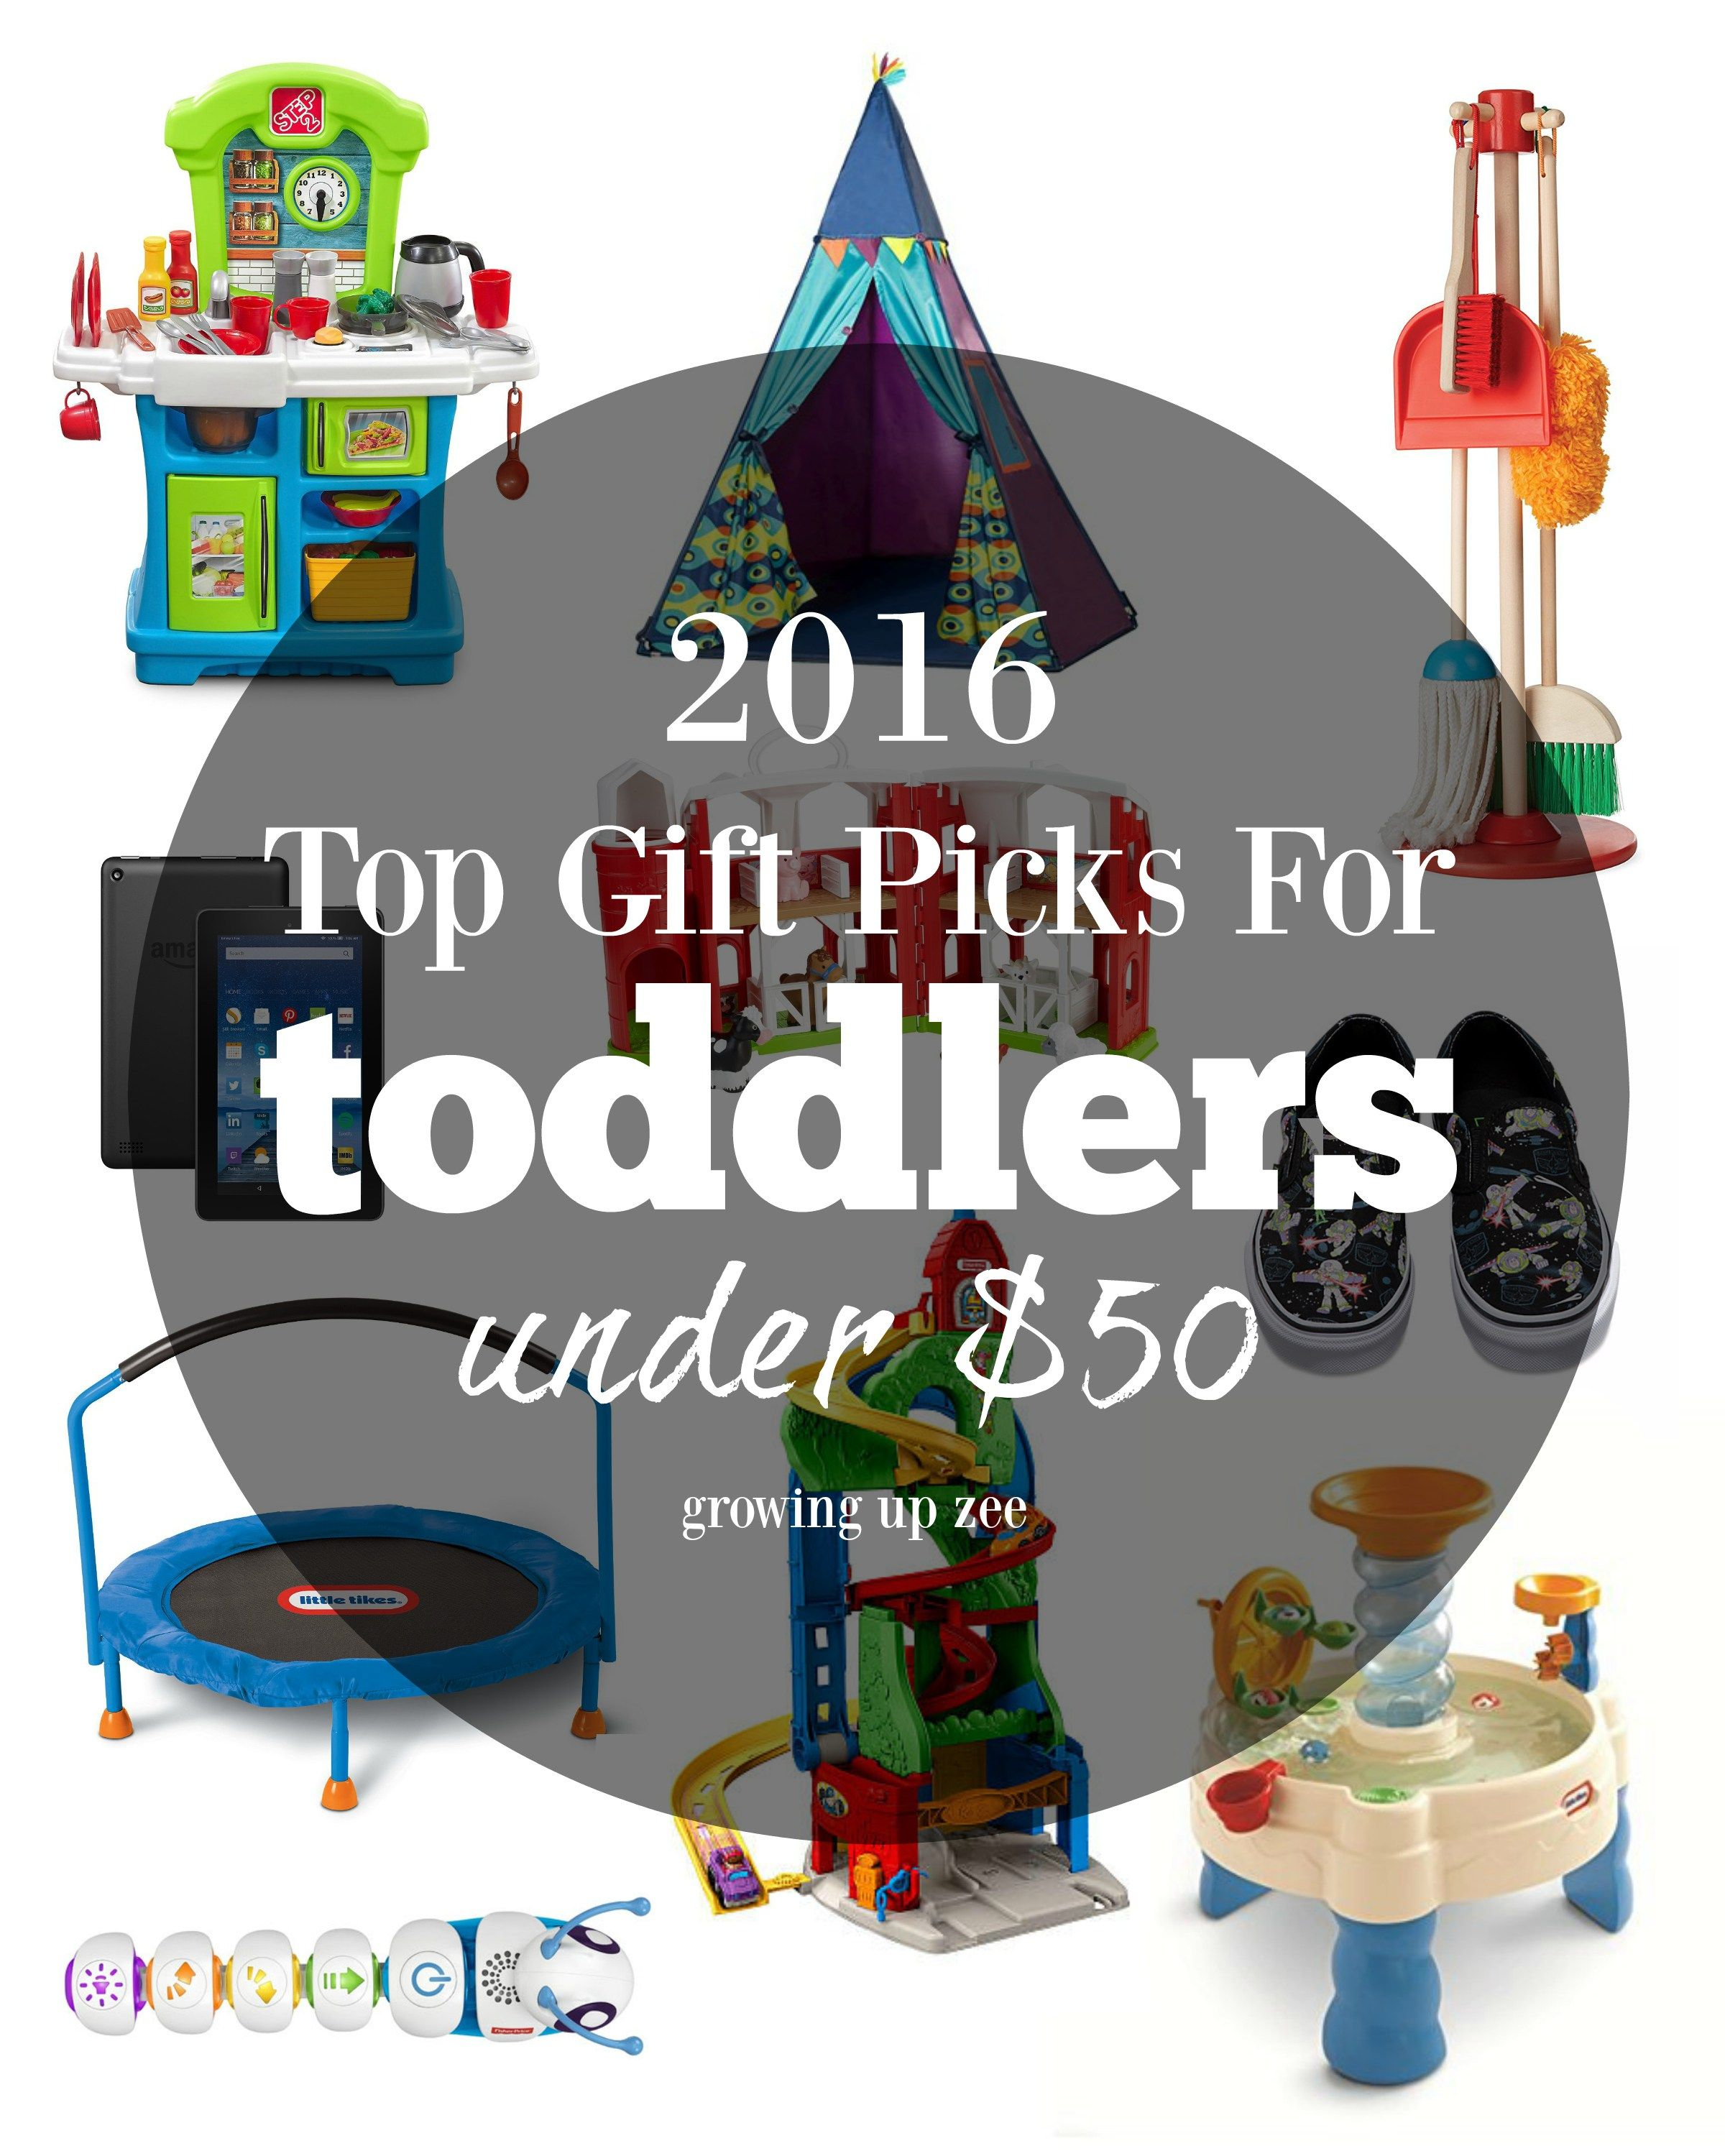 2016 Top Gifts For Toddlers Under 50